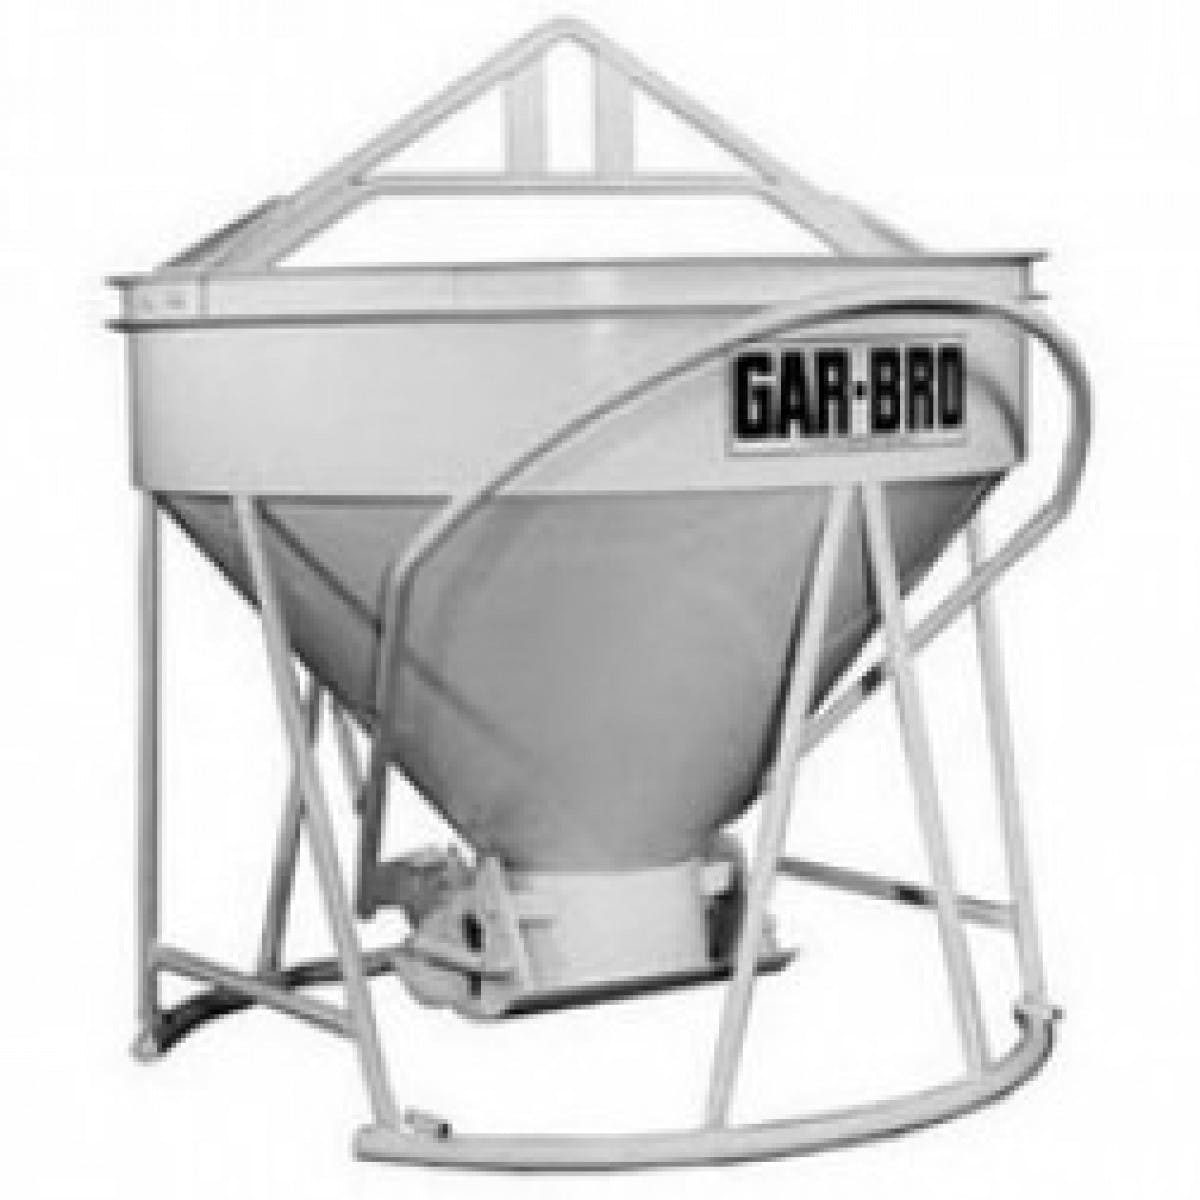 Garbro Concrete Bucket 0